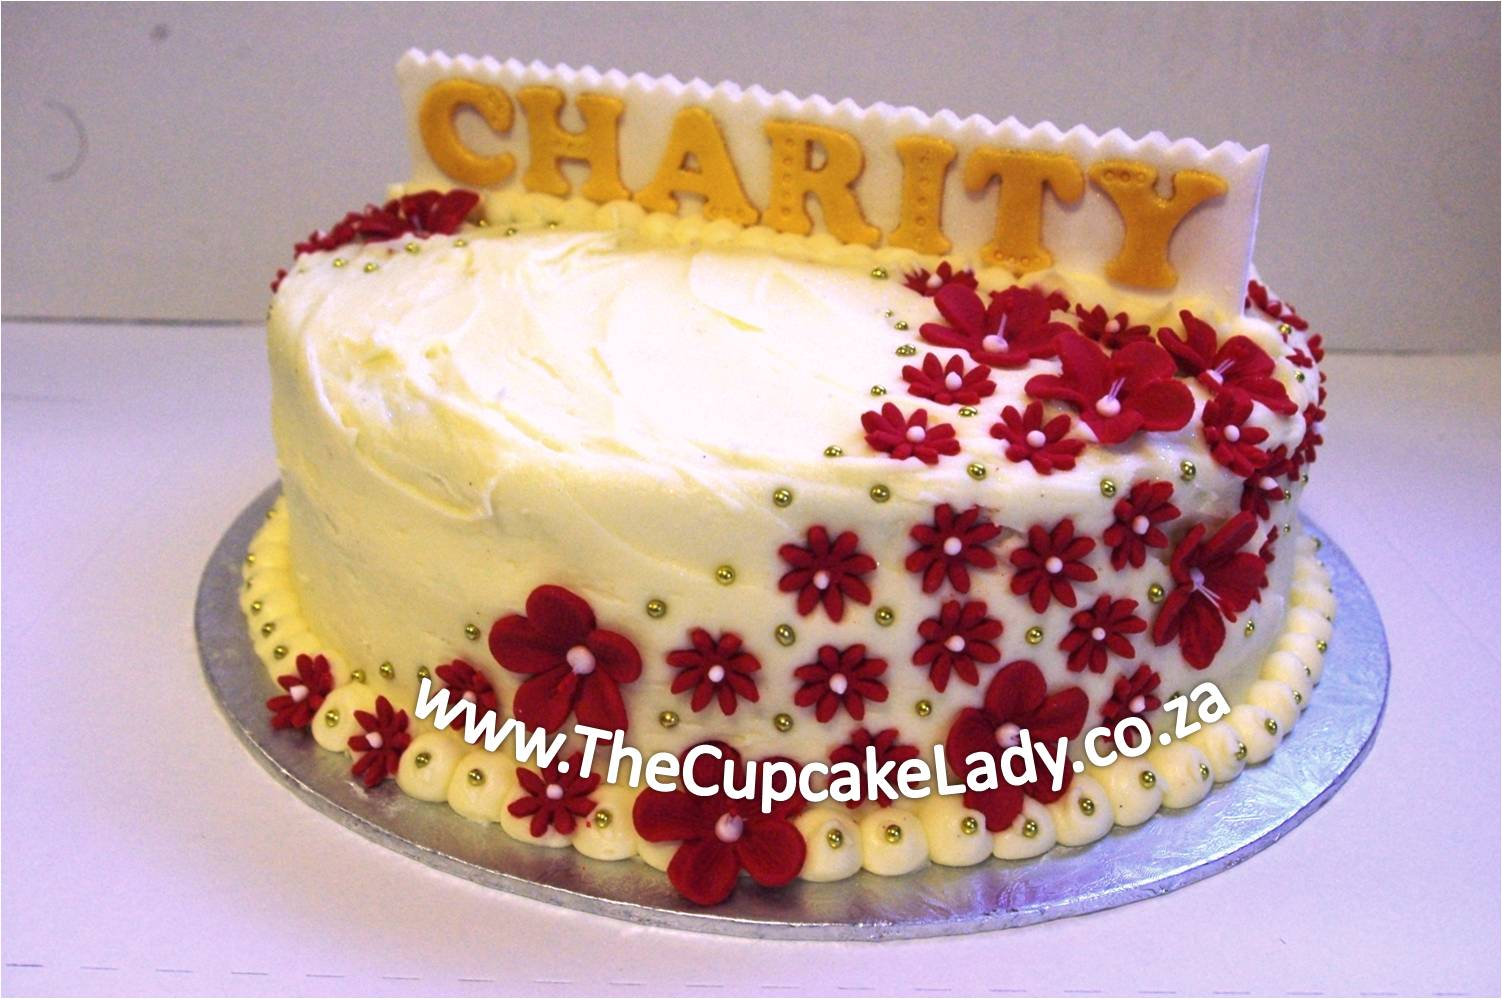 red velvet cake cream cheese icing sugar paste fondant flowers